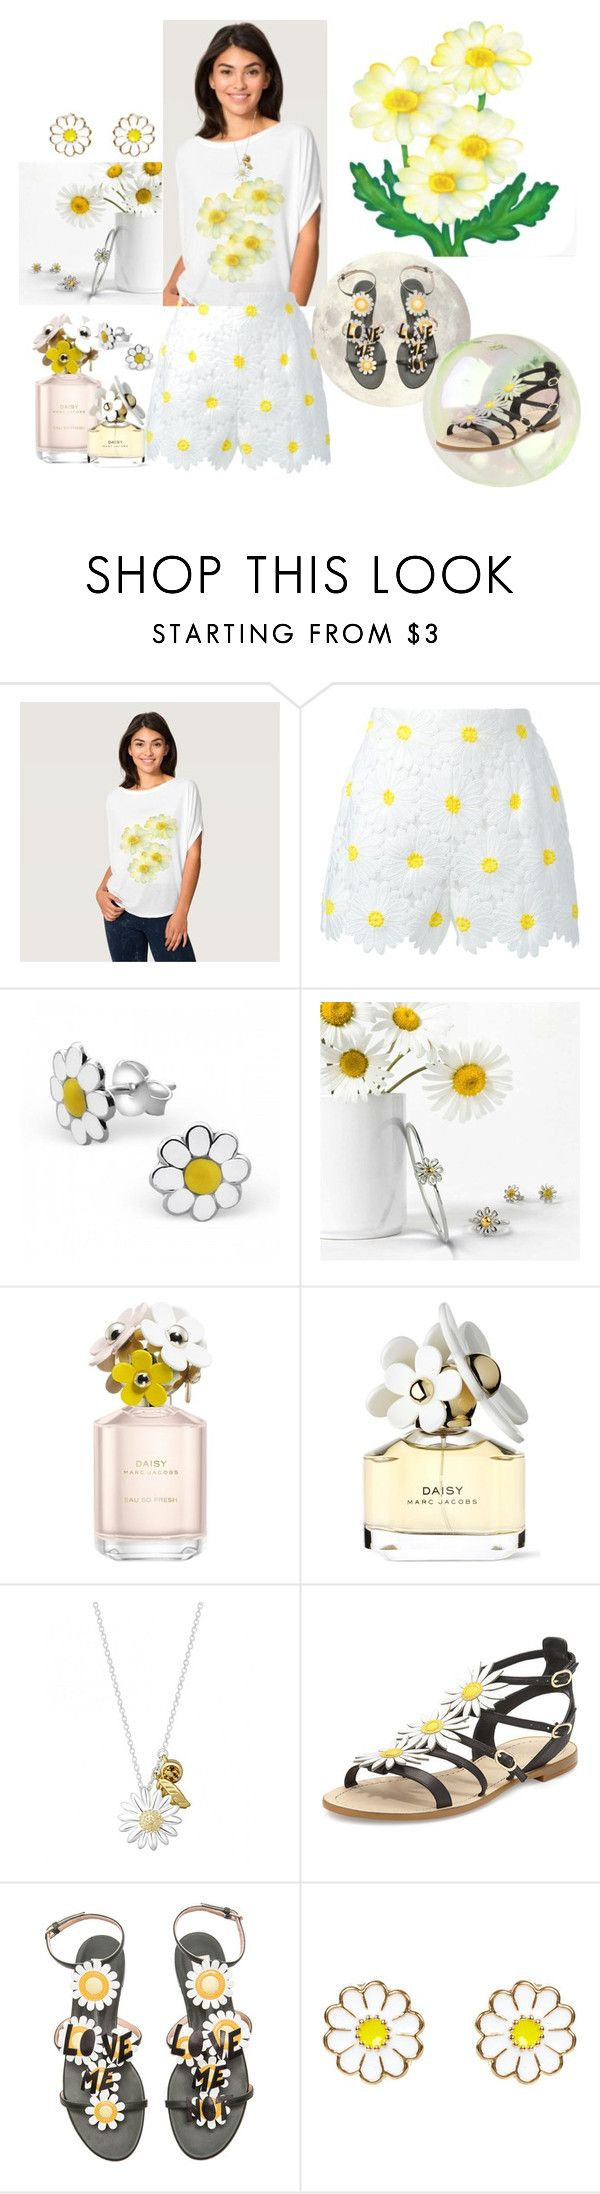 """Daisies"" by boo-poo-bee-doo ❤ liked on Polyvore featuring Dolce&Gabbana, Bling Jewelry, Marc Jacobs, Daisy Jewellery, Kate Spade, Valentino and Monsoon"